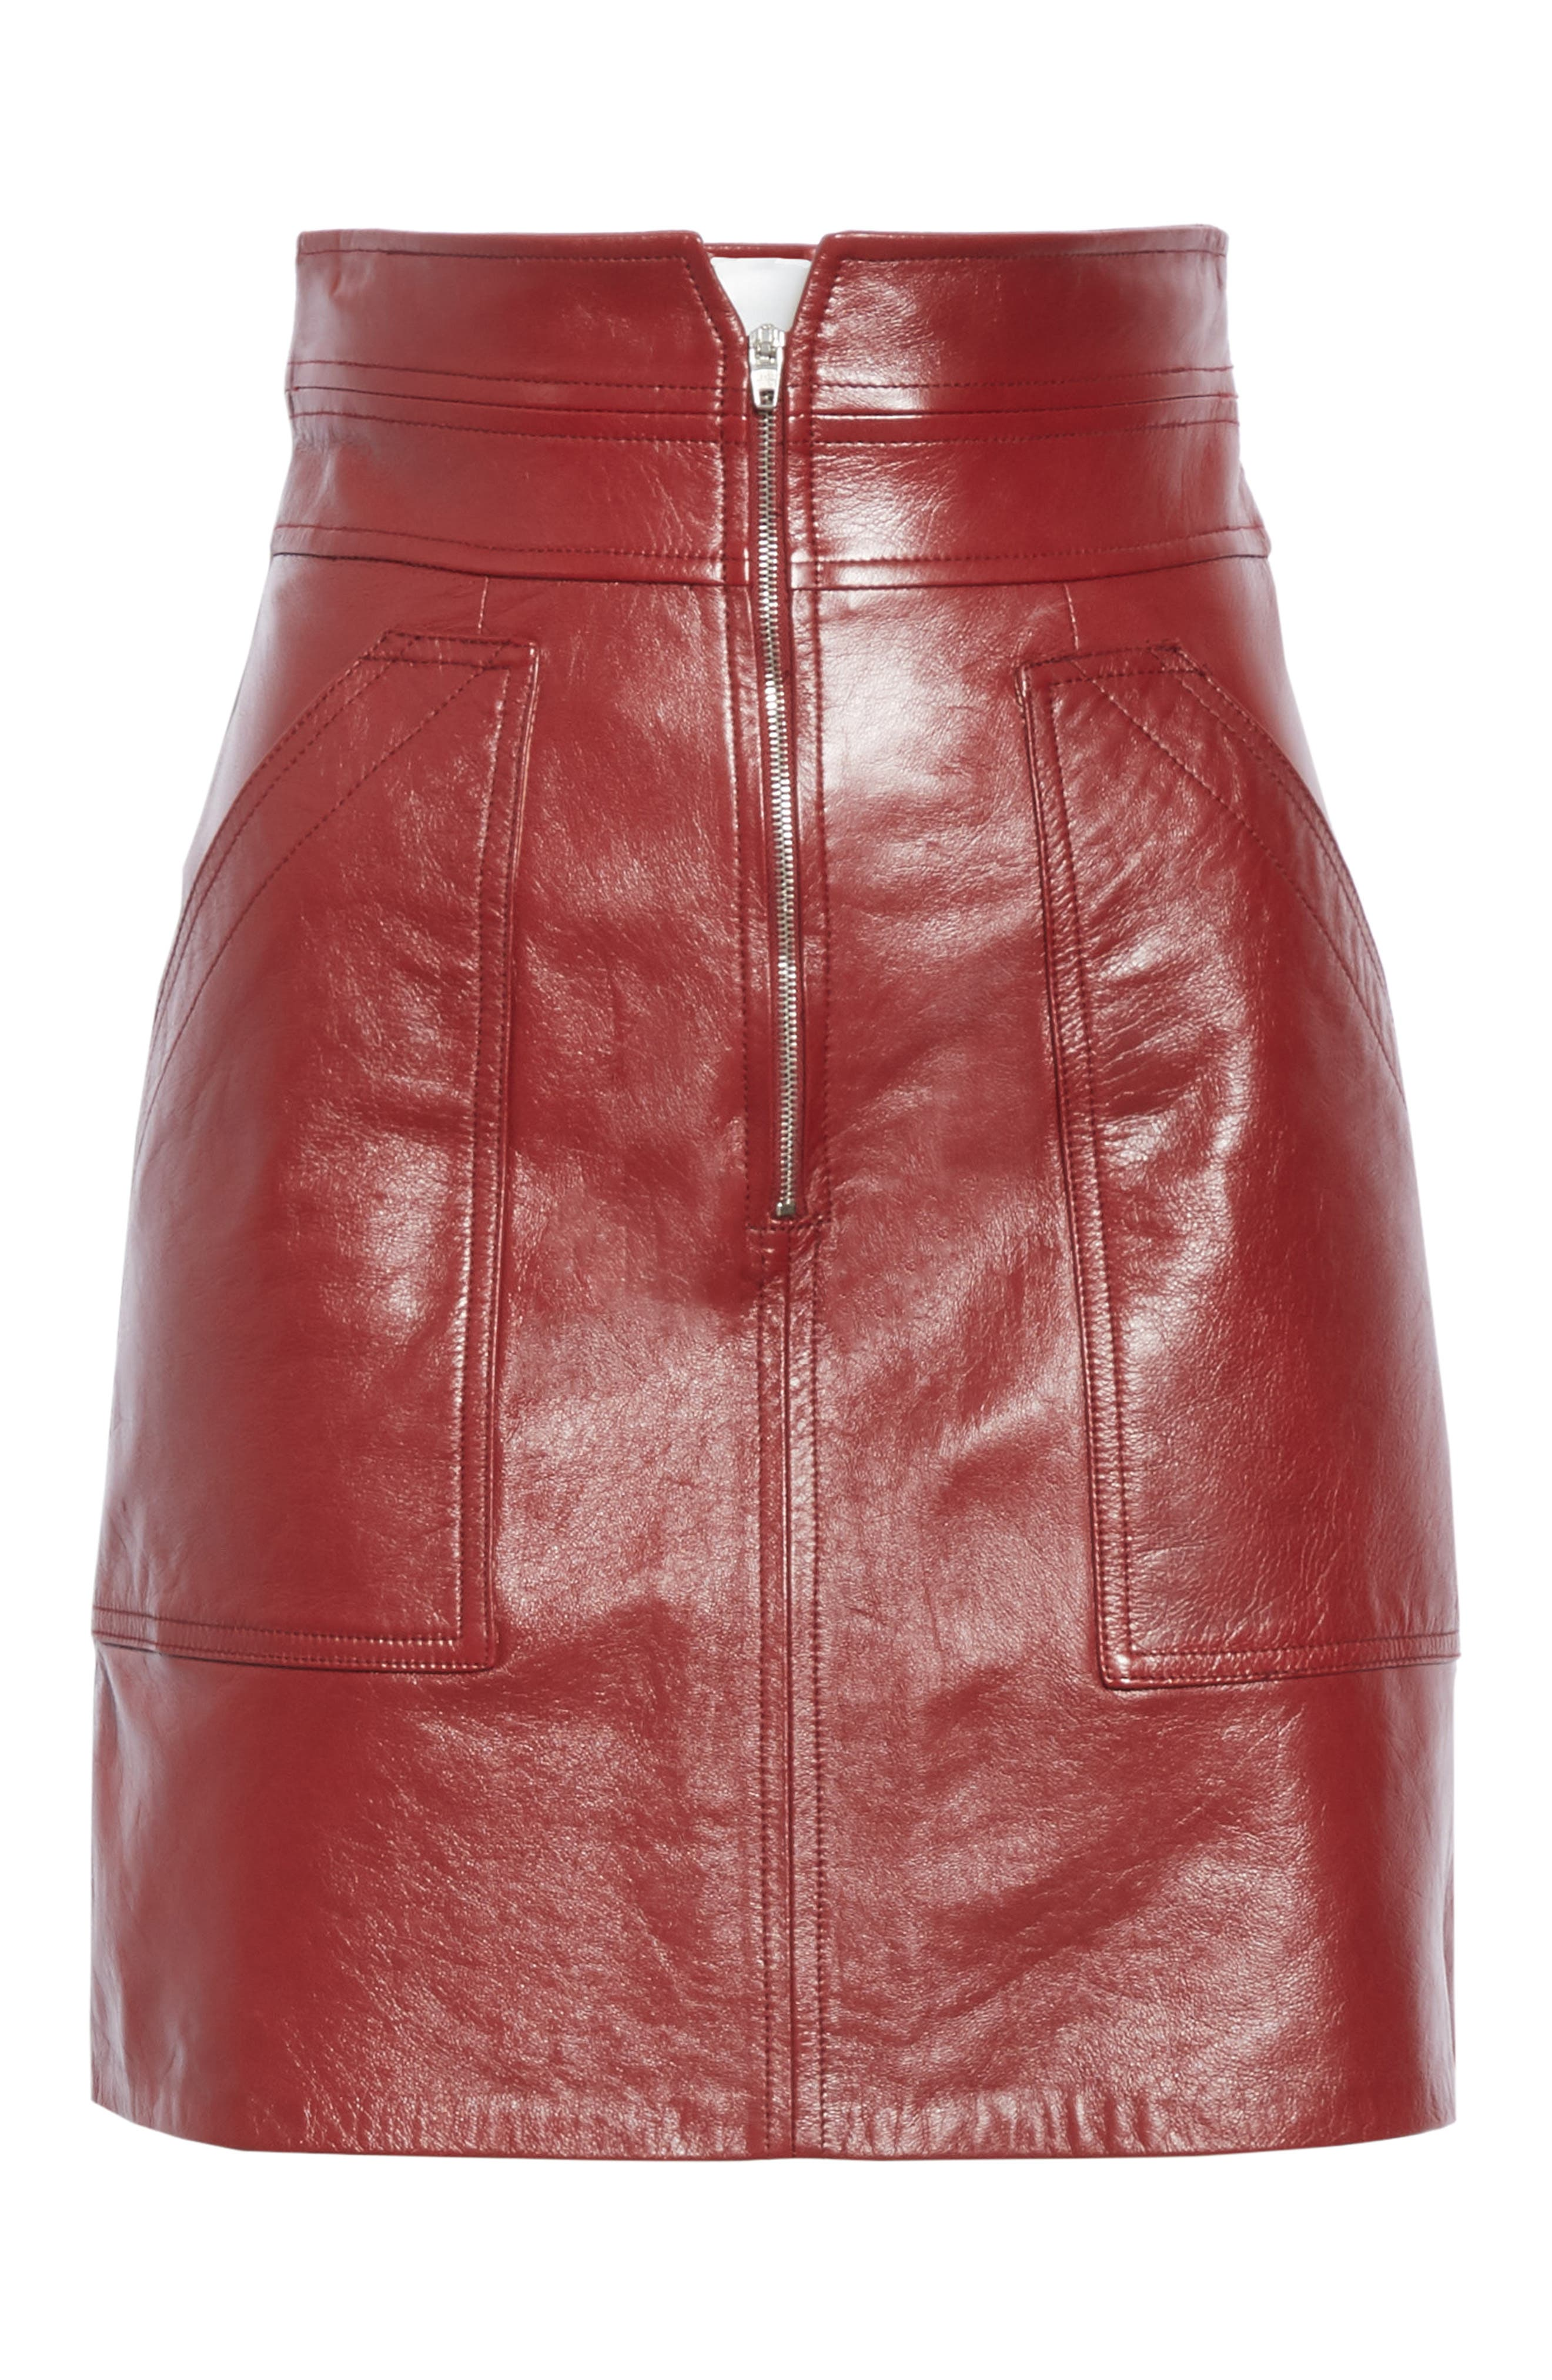 REBECCA TAYLOR, Leather Skirt, Alternate thumbnail 6, color, SPICE